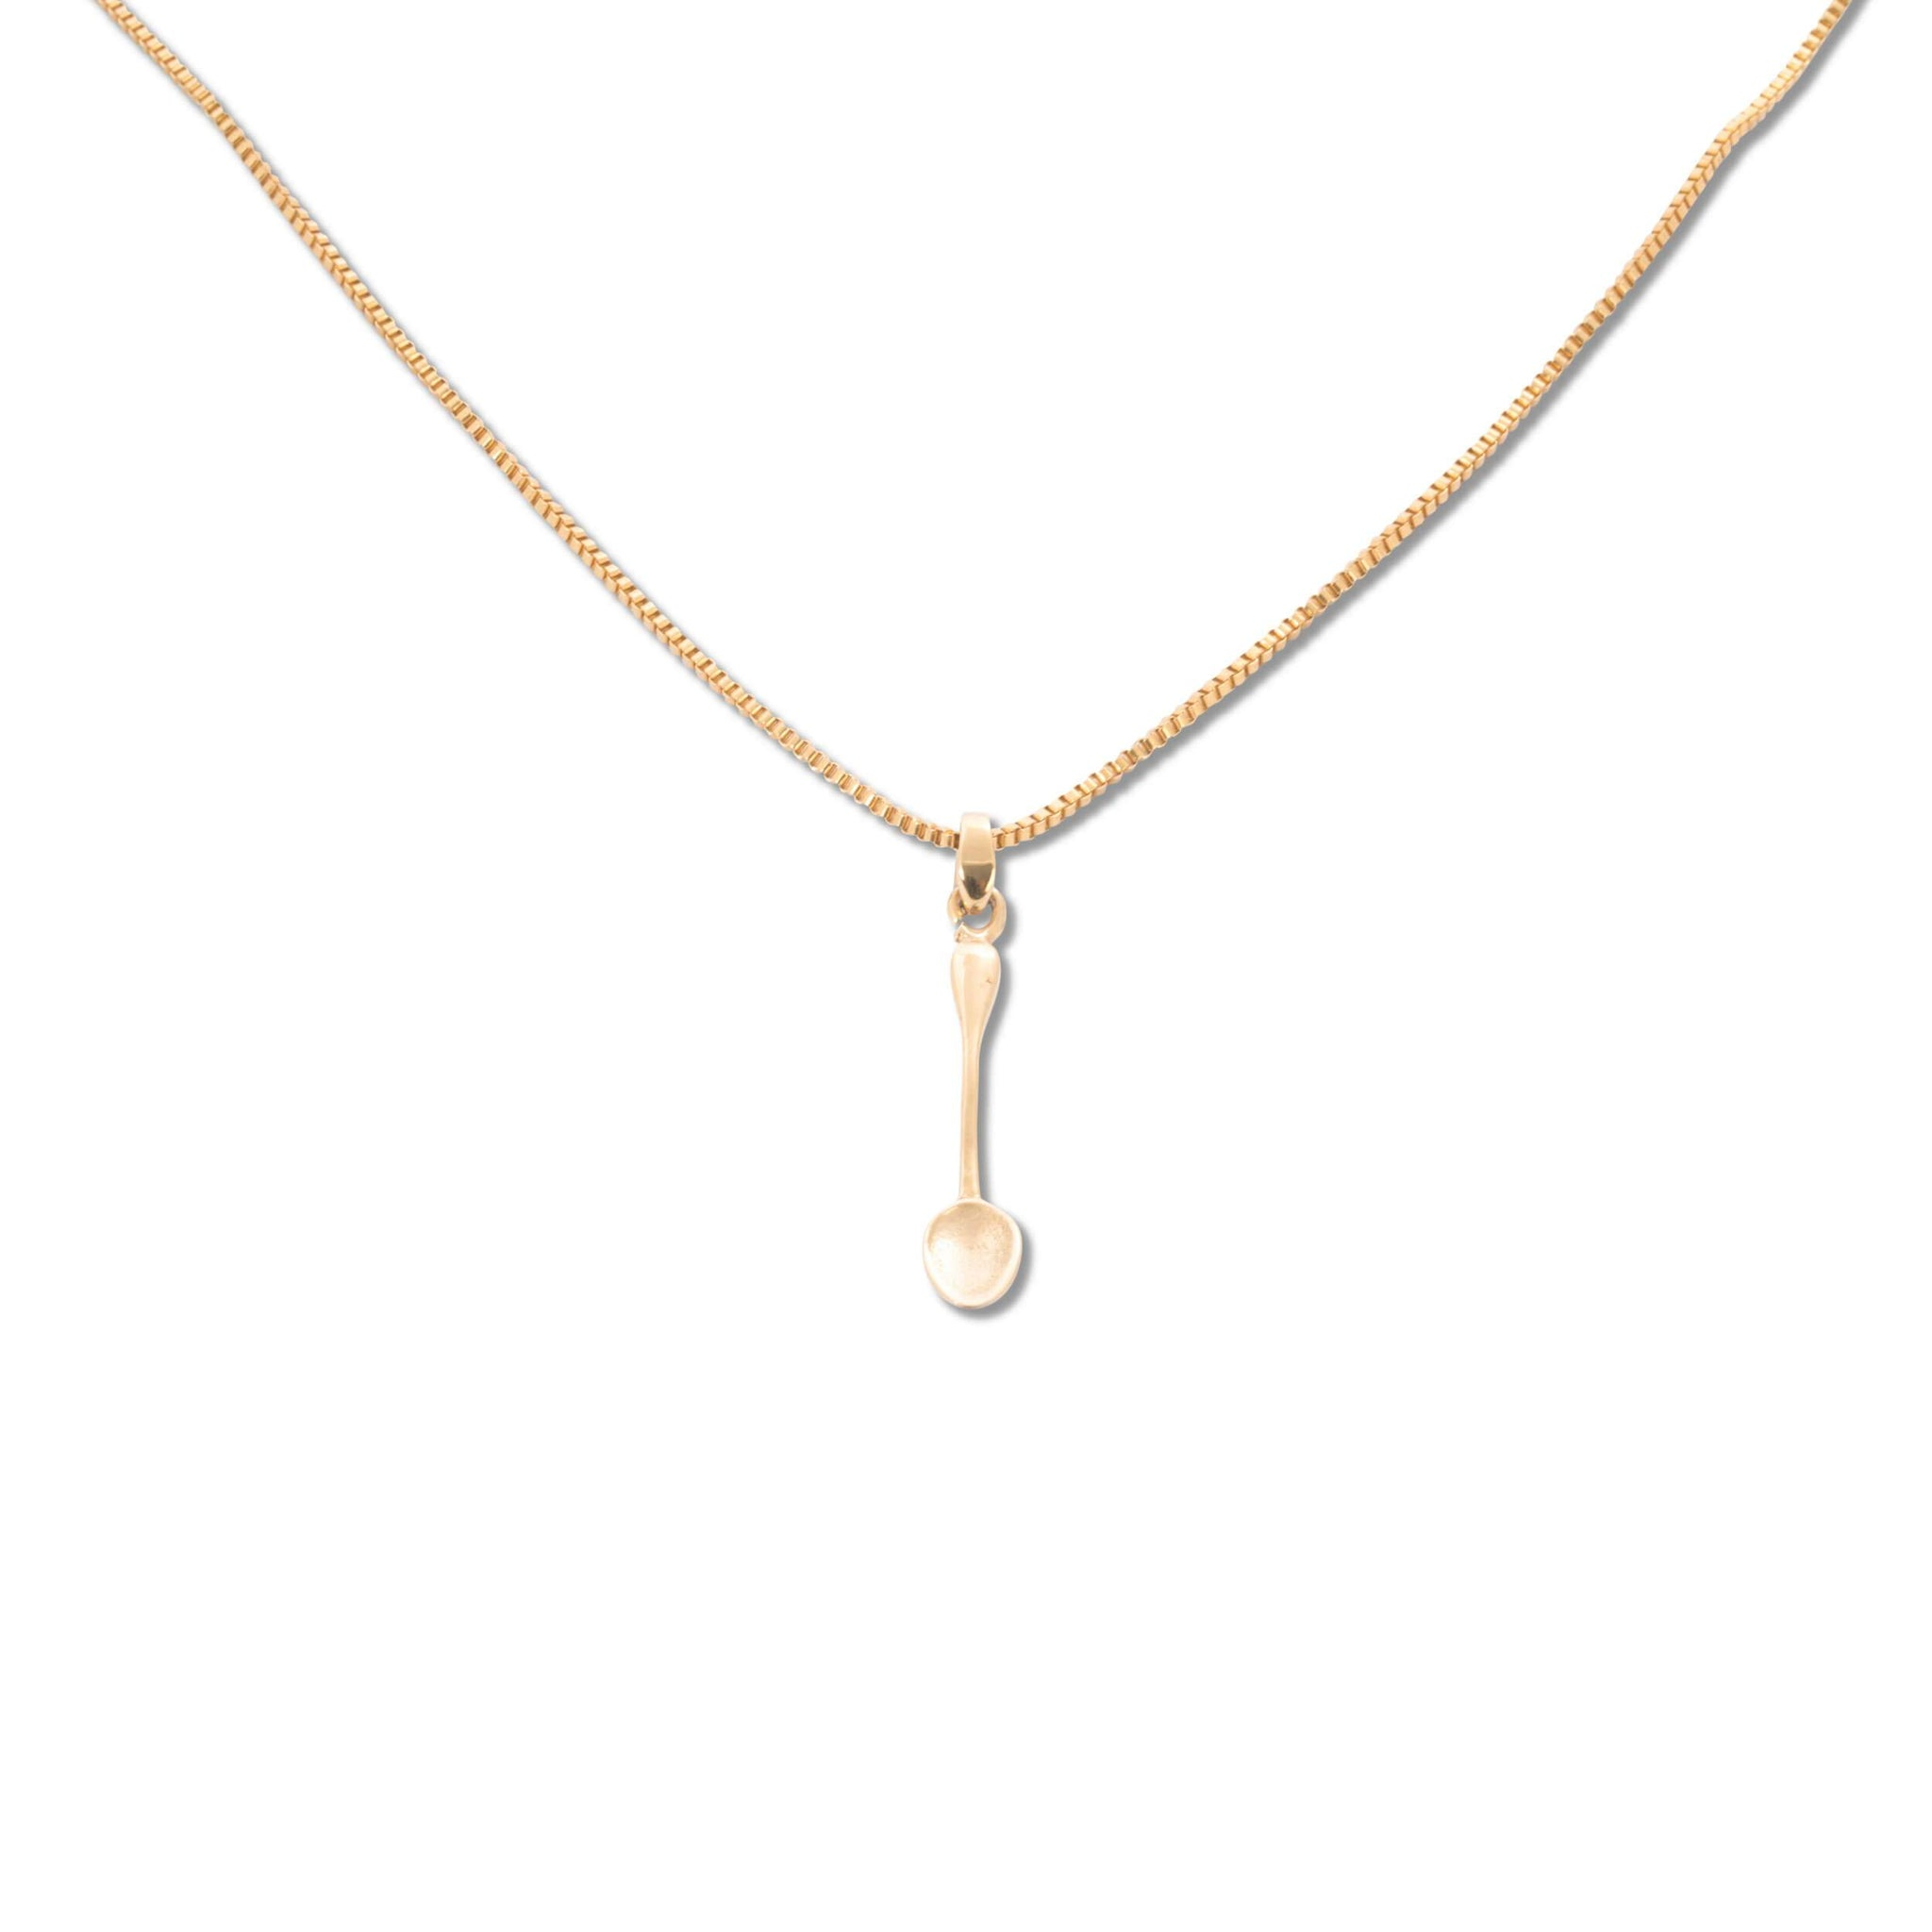 Ainker Spoon Necklace in Gold